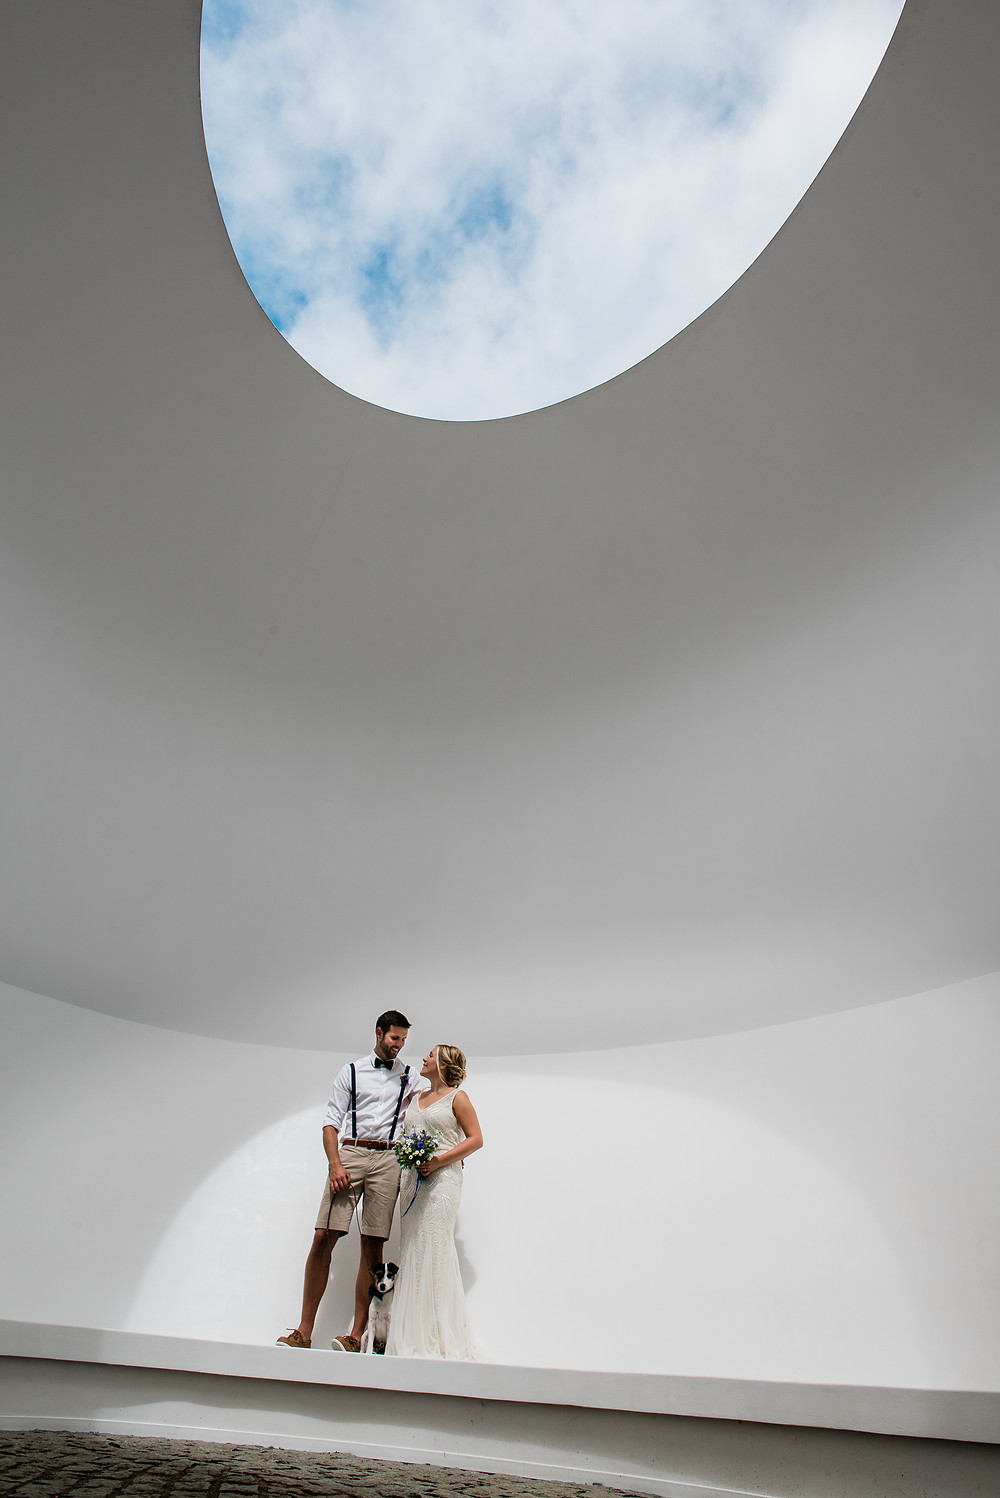 can you get married anywhere you like in the UK